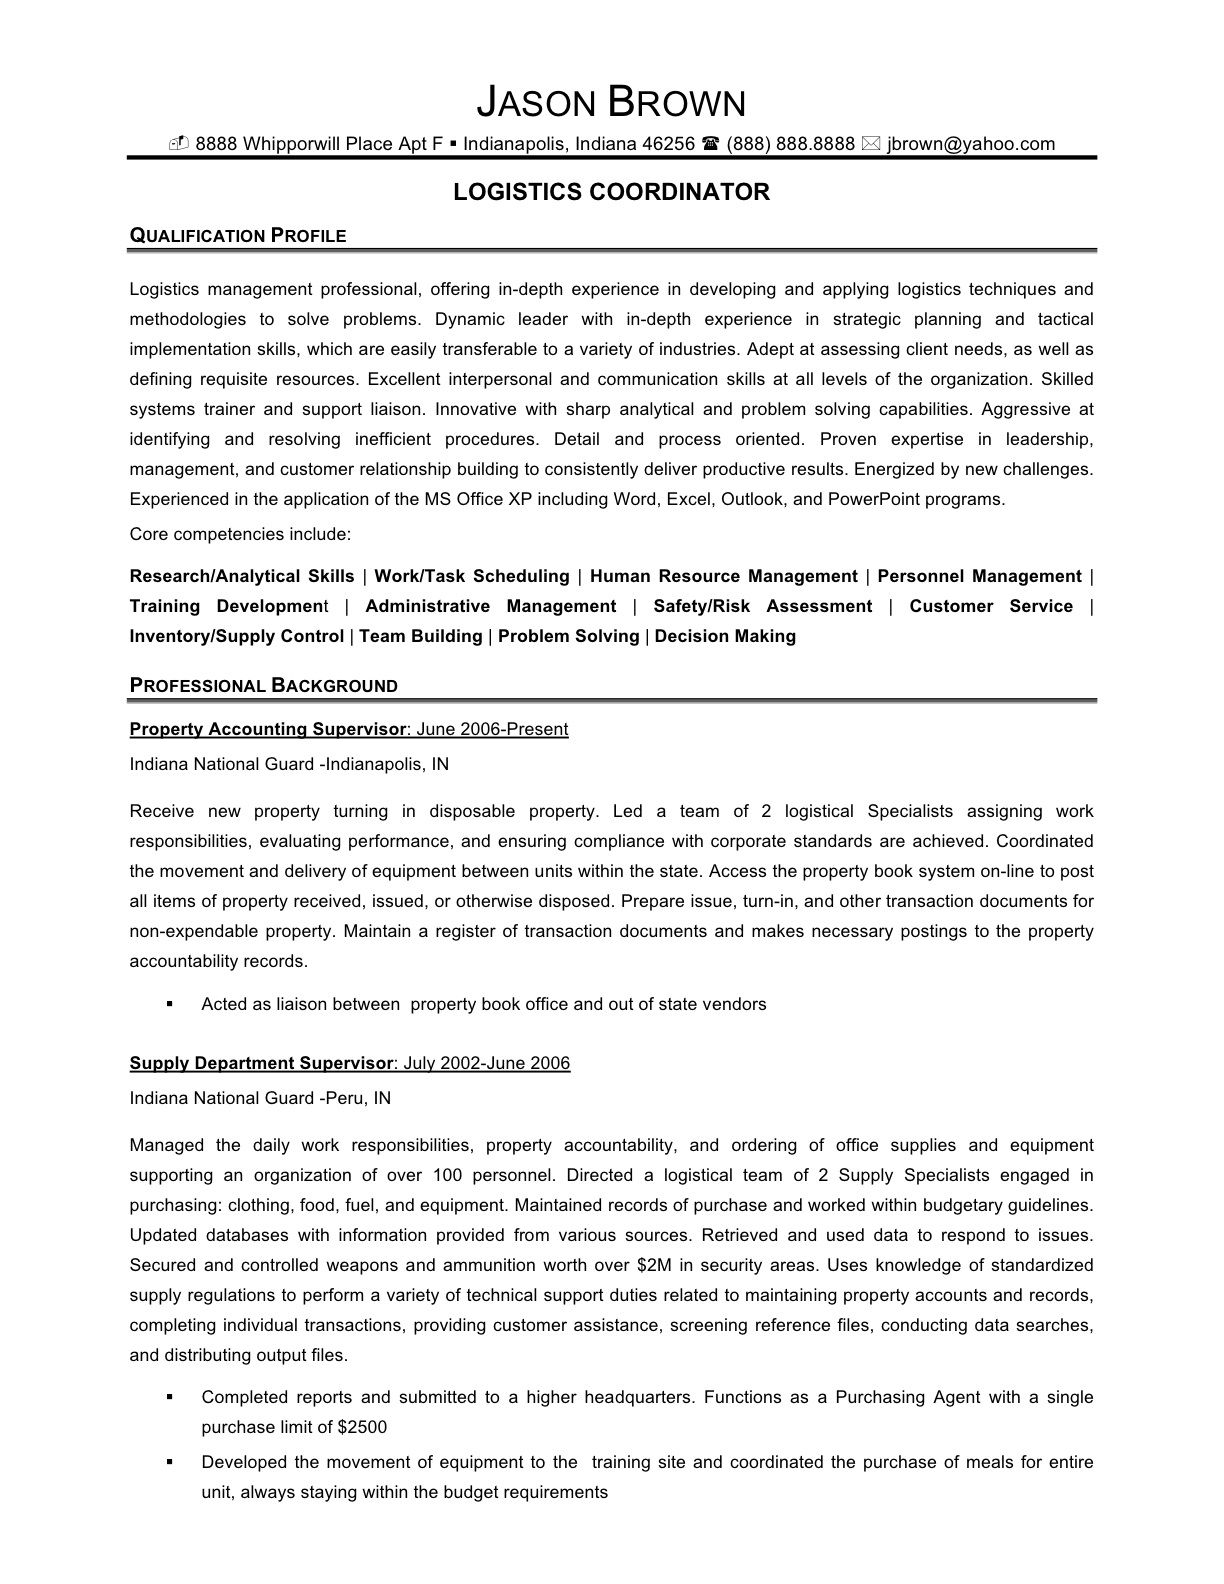 senior logistic management resume | Logistics Coordinator.1 ...